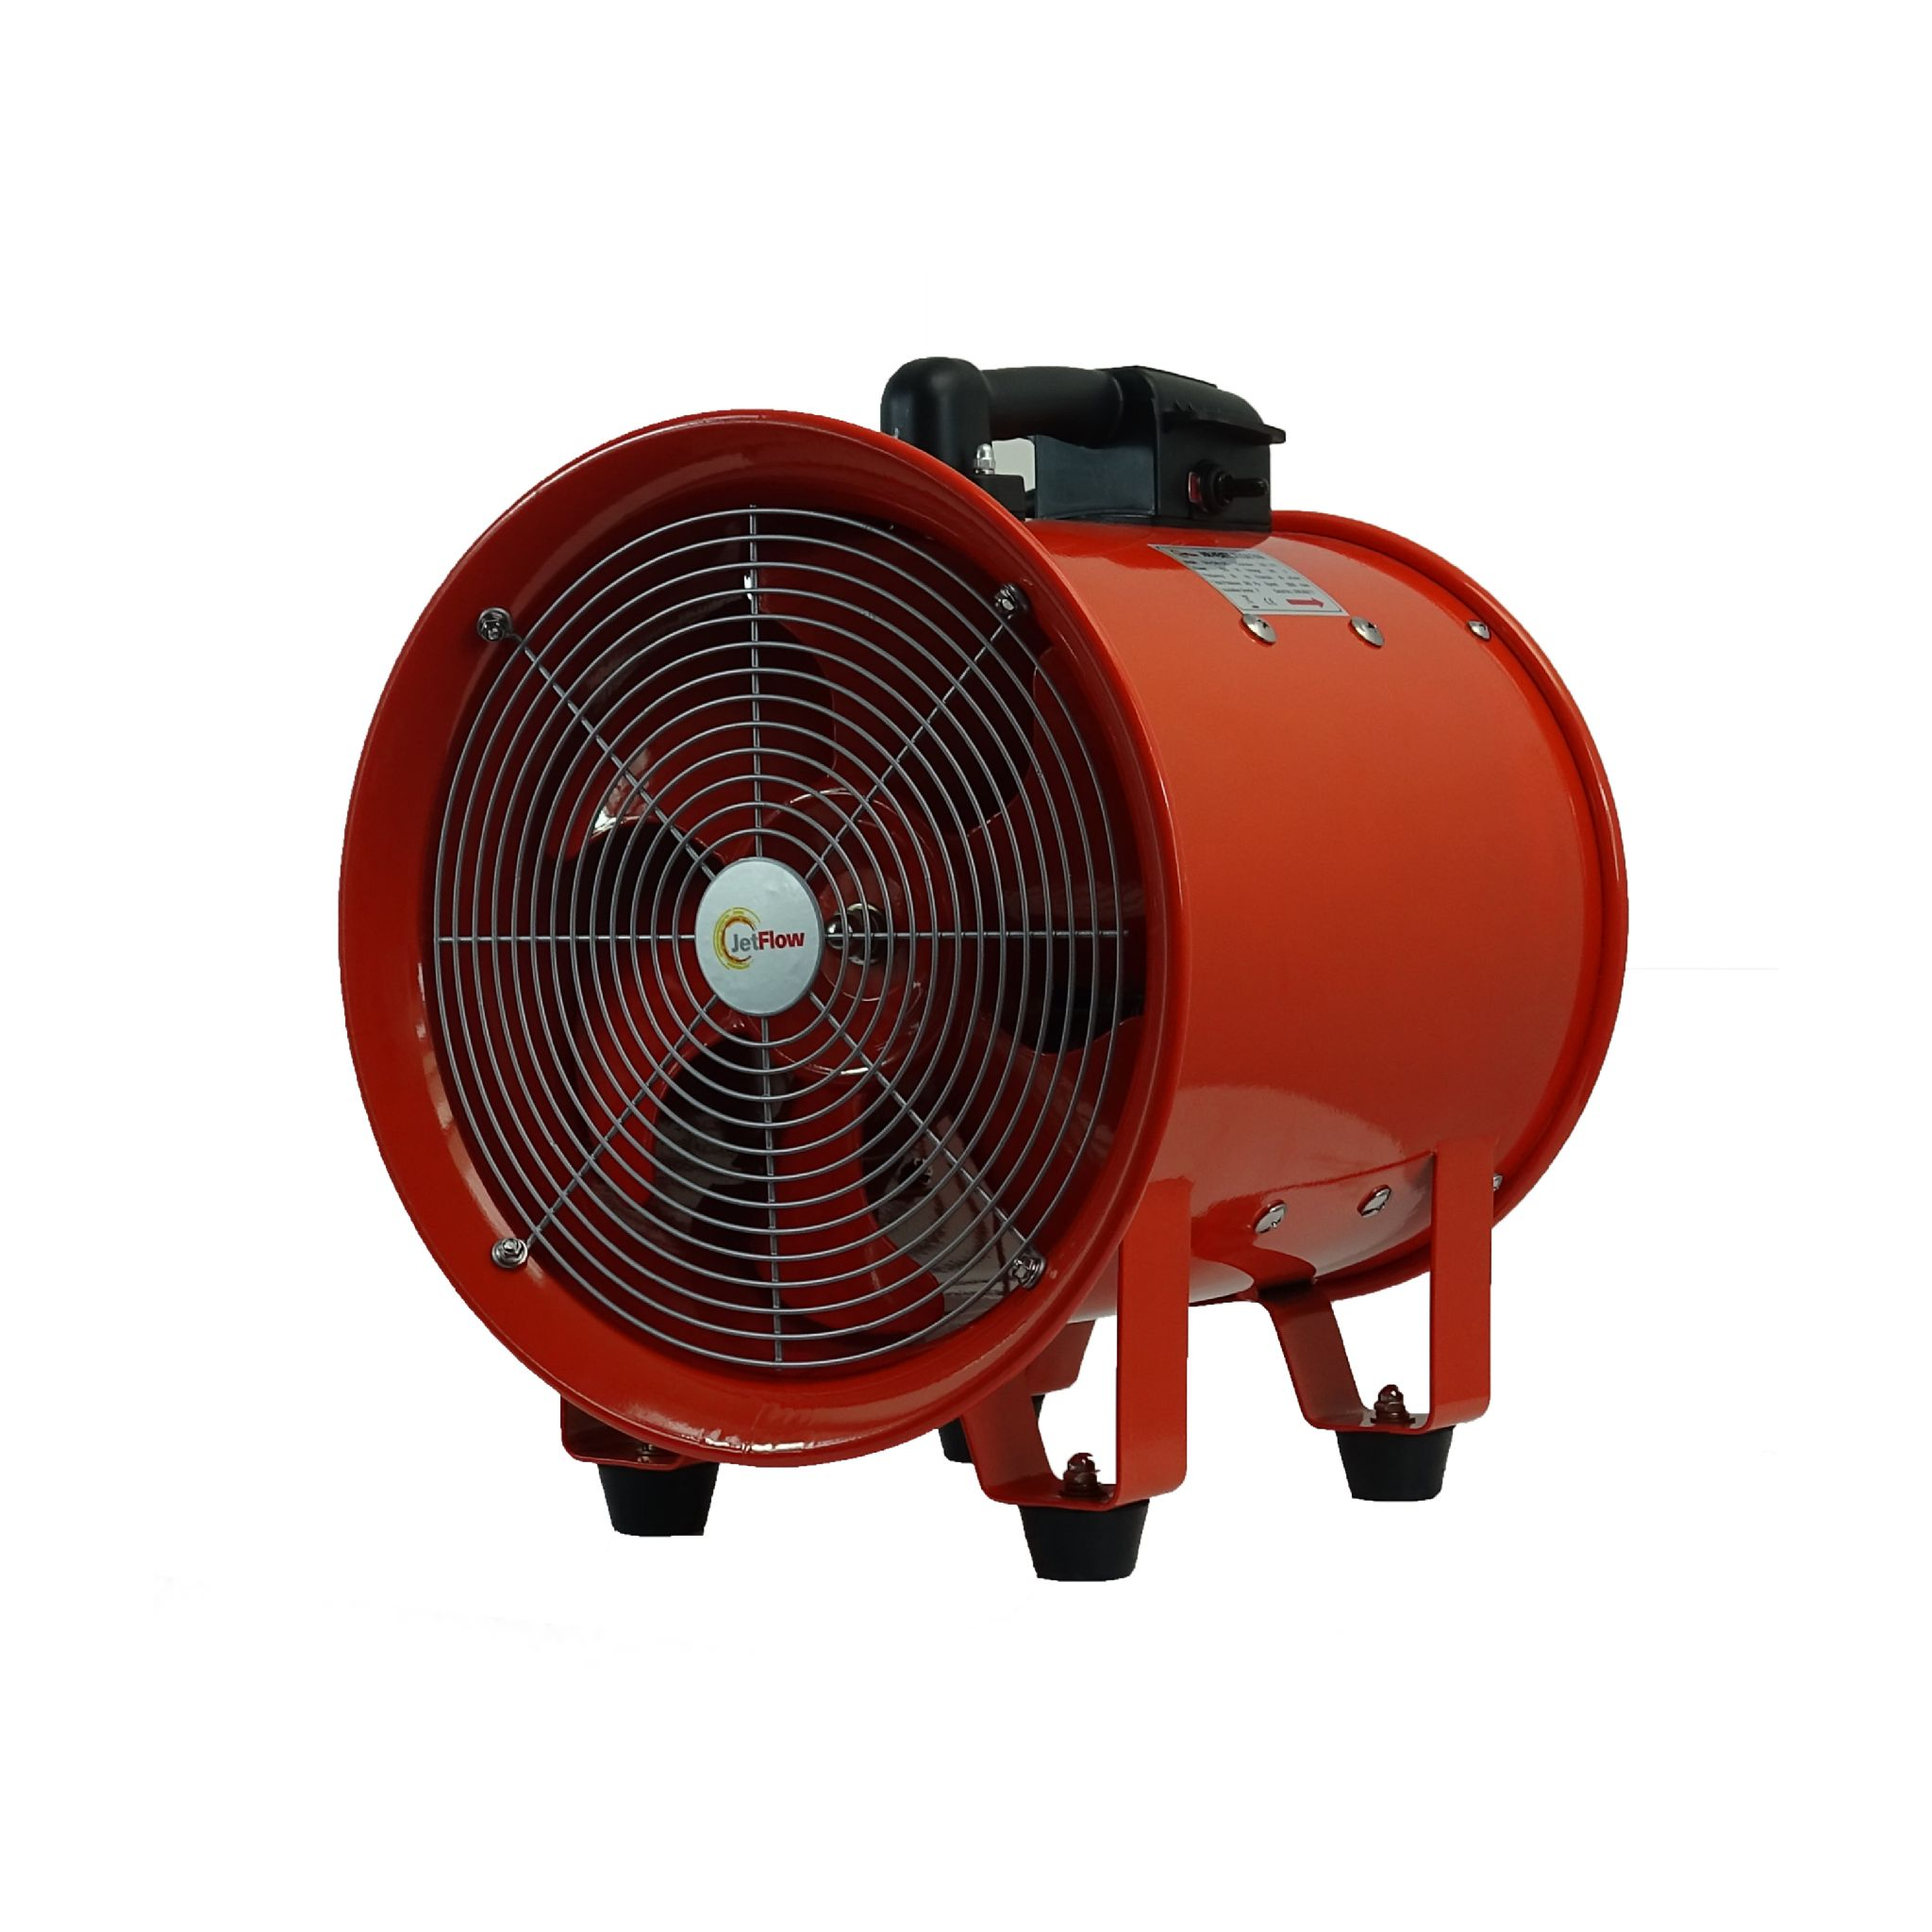 Portable Extractor Fan Extractor And Ventilator Fan 300mm 3600m3 Hr 110v And 220v 50hz